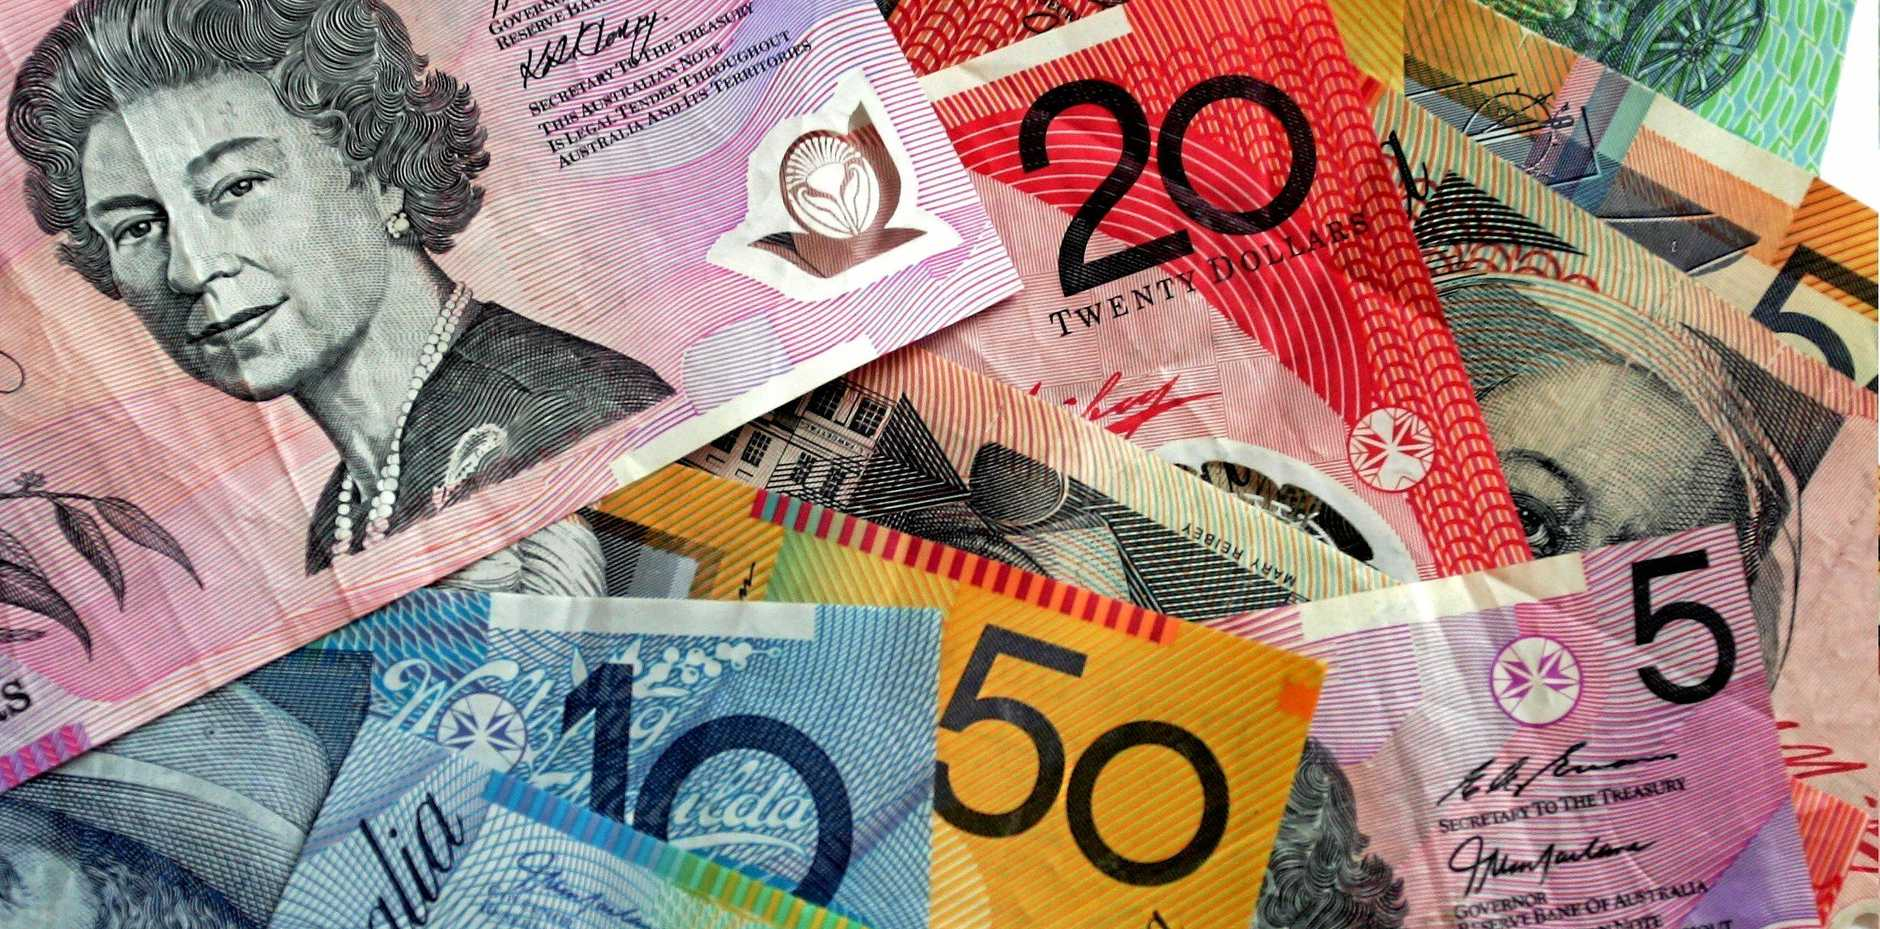 CASH IN: Time for a career change? There's heaps of opportunities up for grabs in Warwick.